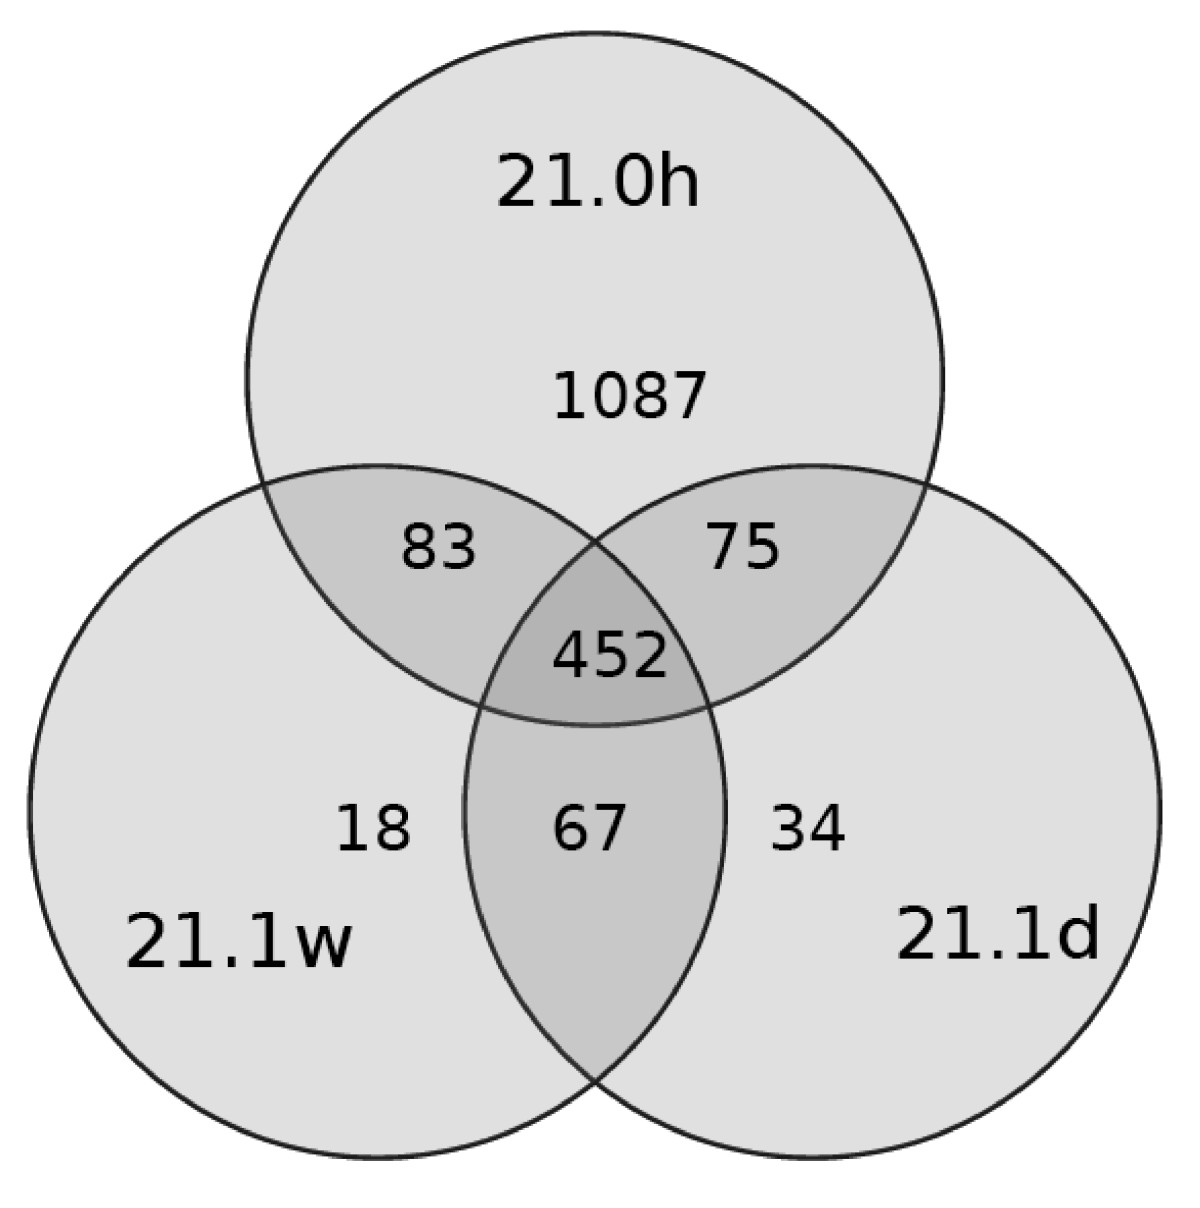 http://static-content.springer.com/image/art%3A10.1186%2F1746-4811-6-6/MediaObjects/13007_2009_Article_100_Fig2_HTML.jpg